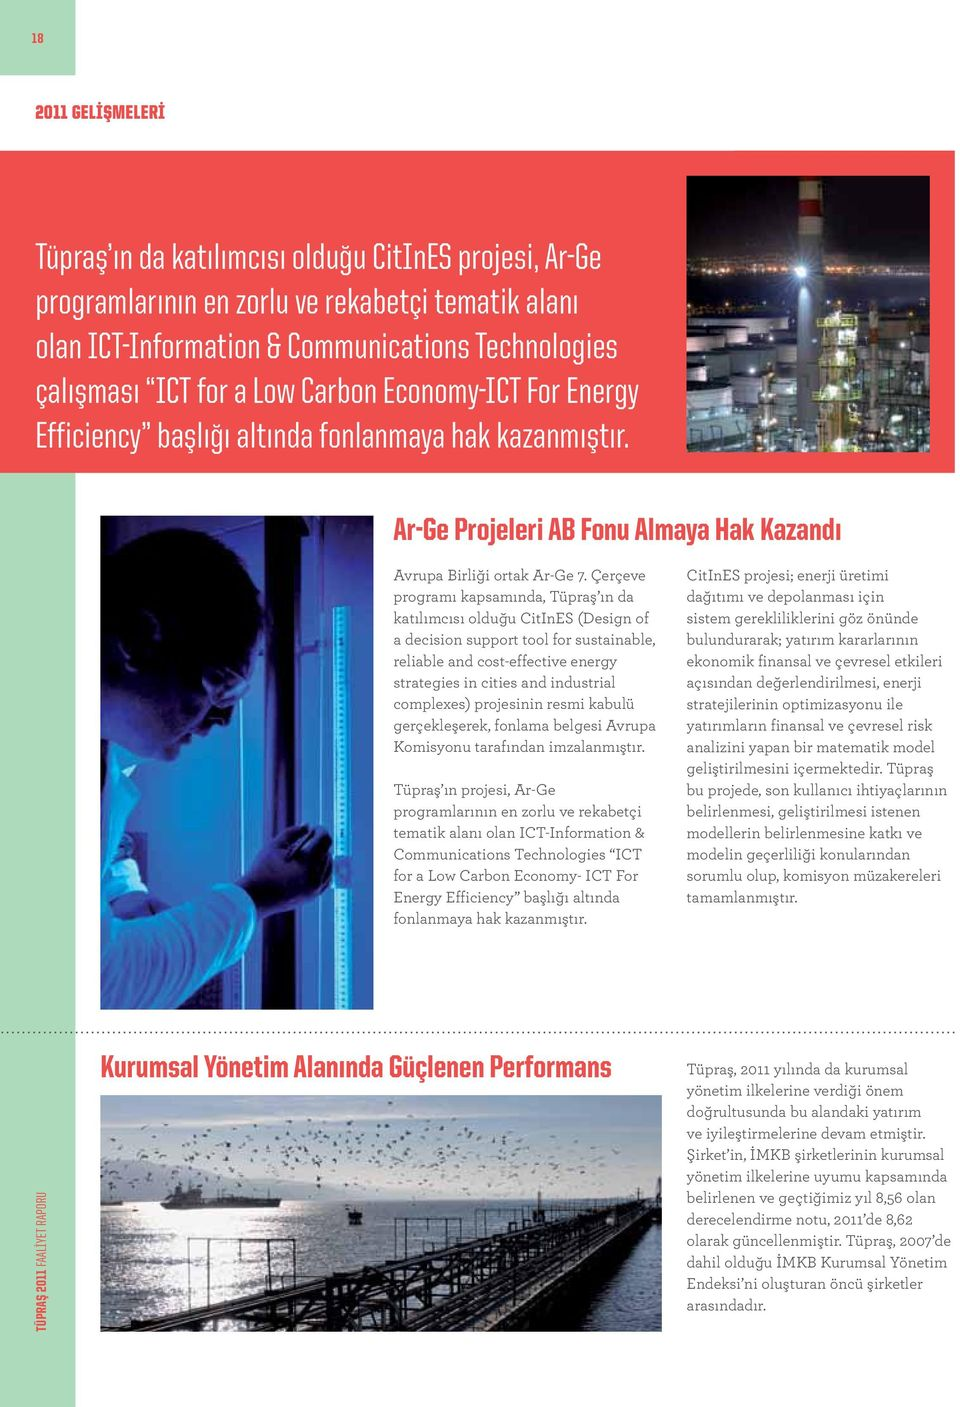 Çerçeve programı kapsamında, Tüpraş ın da katılımcısı olduğu CitInES (Design of a decision support tool for sustainable, reliable and cost-effective energy strategies in cities and industrial